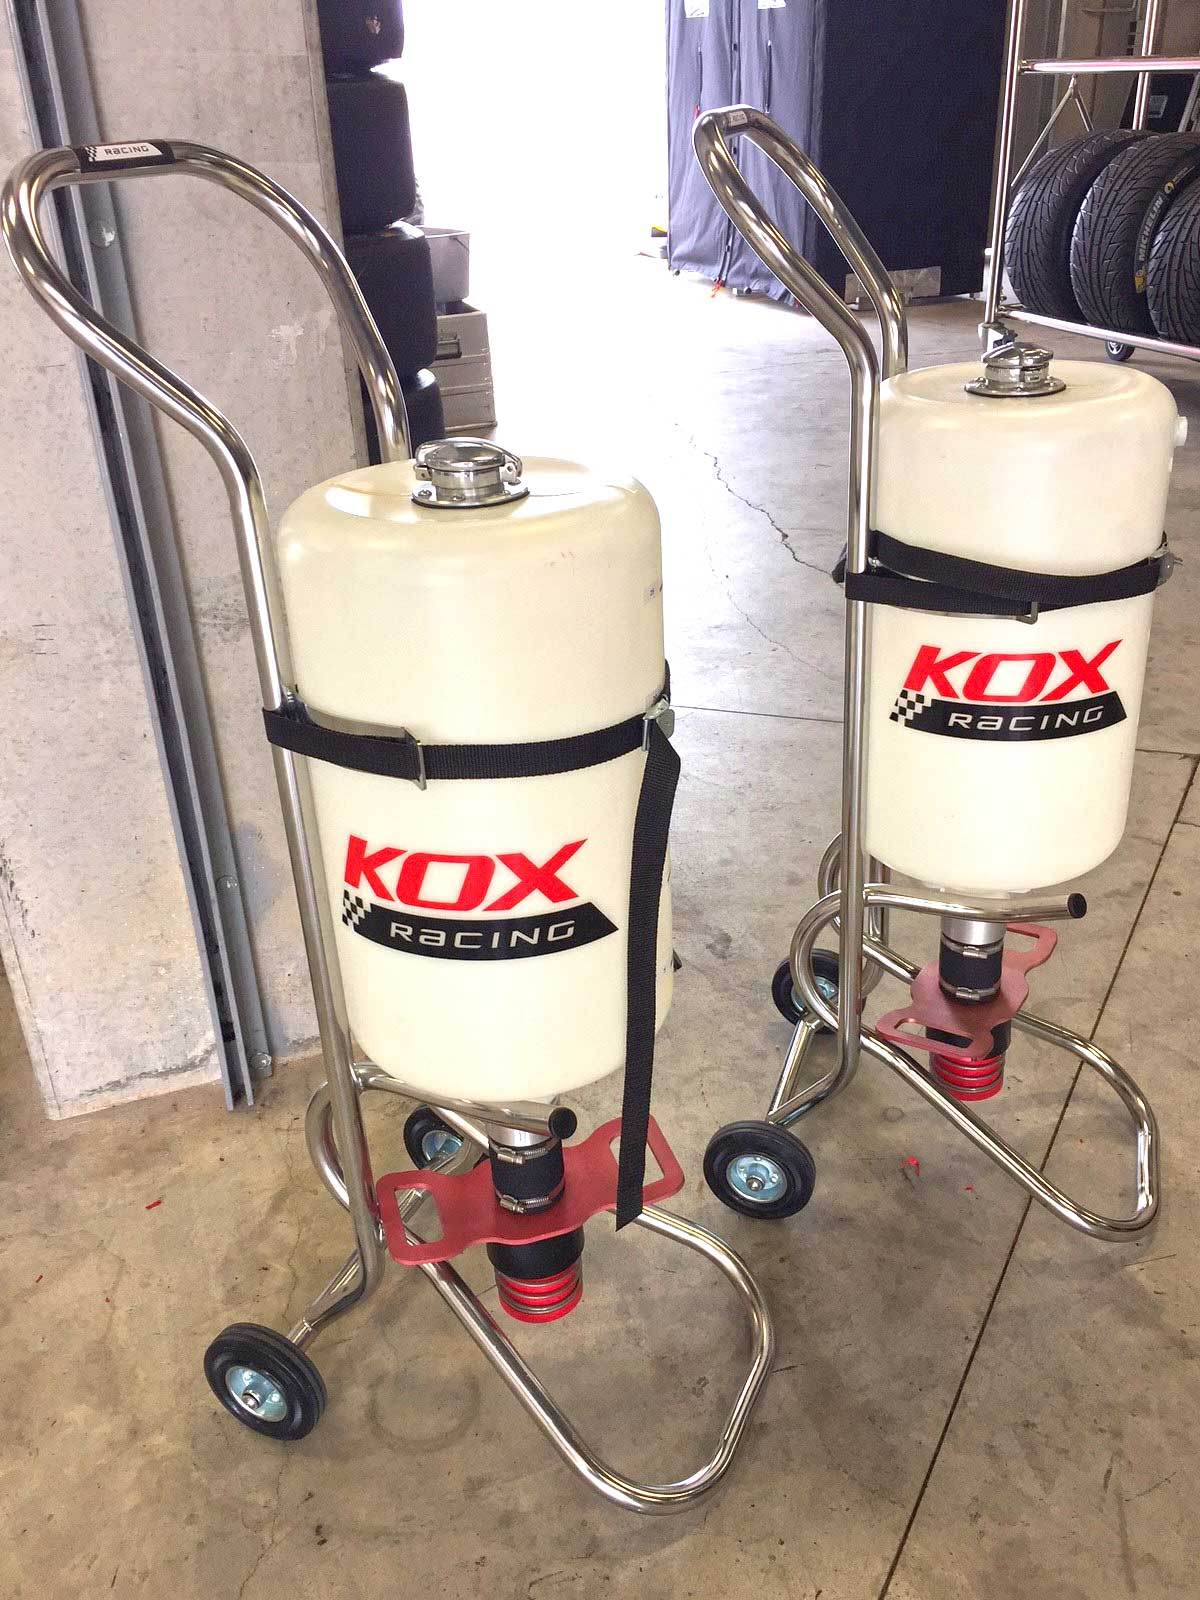 isert-motorsport-koxracing-test-navarra-2016-04